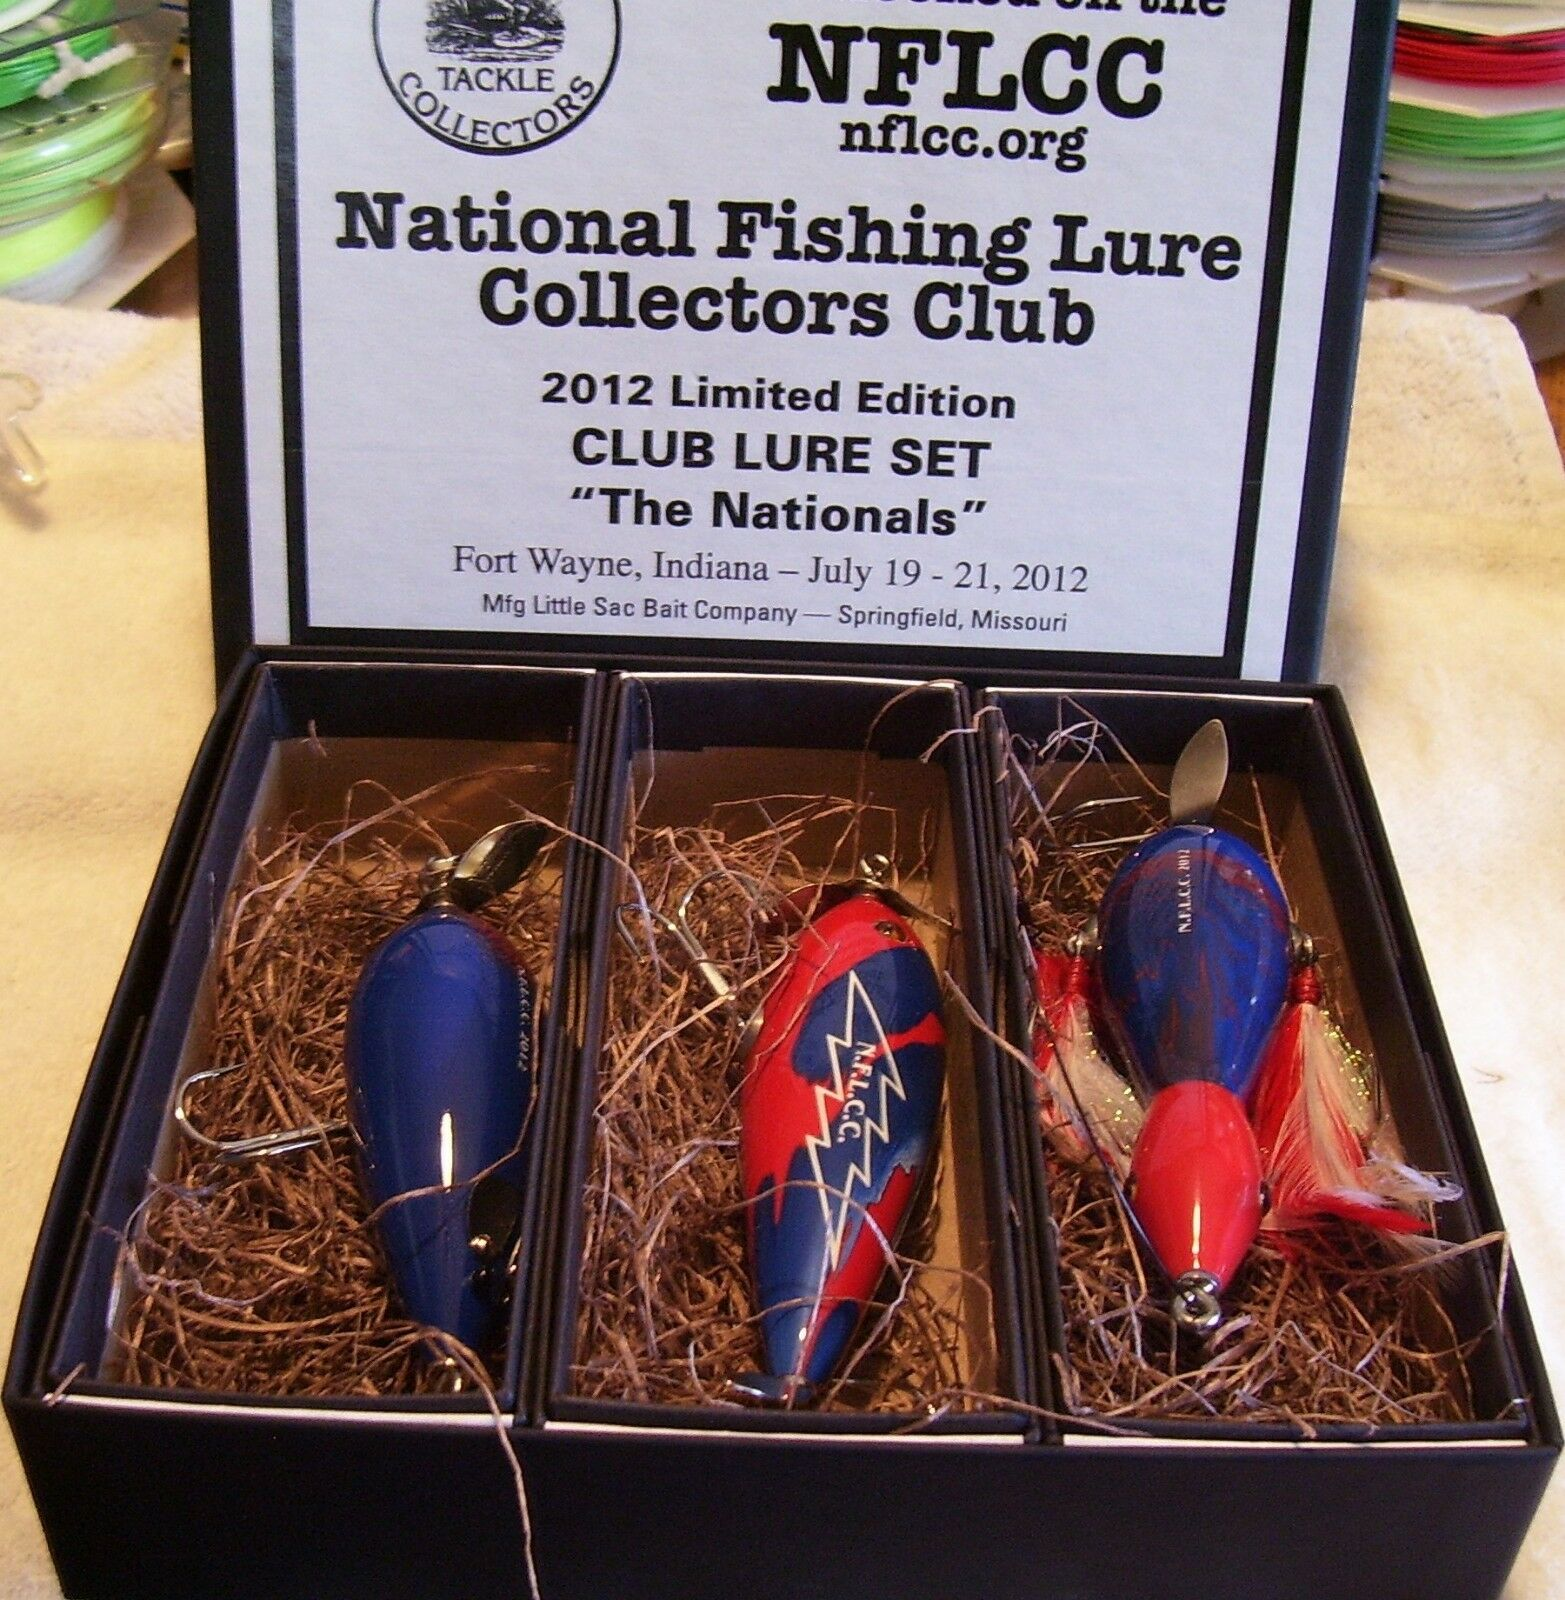 RARE NFLCC 2012 LIMITED EDITION SET OF LURES 01 04 19 FORT WAYNE SHOW NEAR MINT